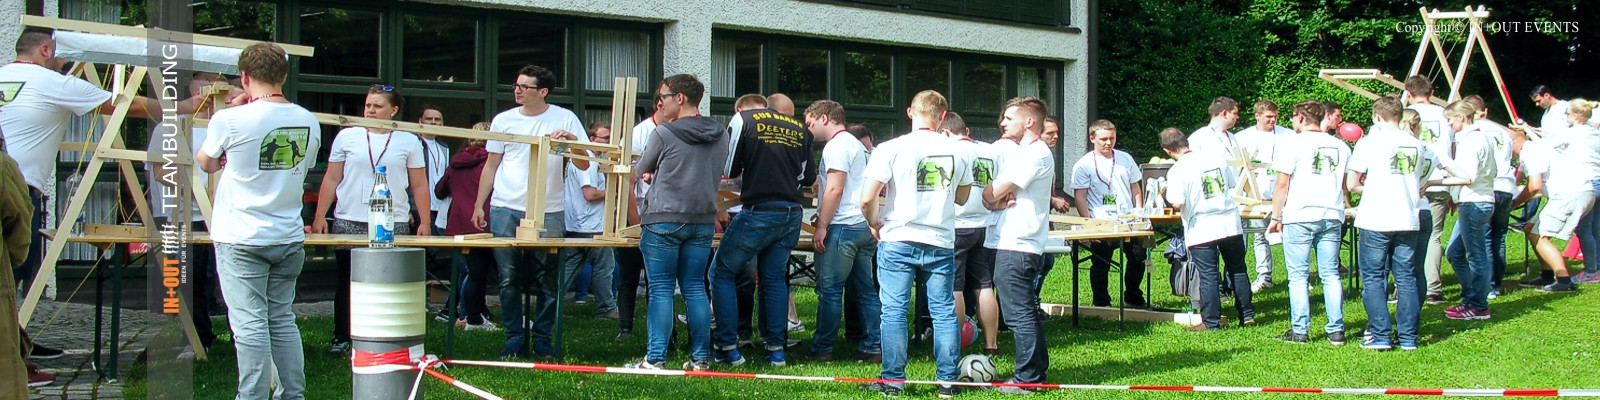 Kettereaktion Teambuilding Event